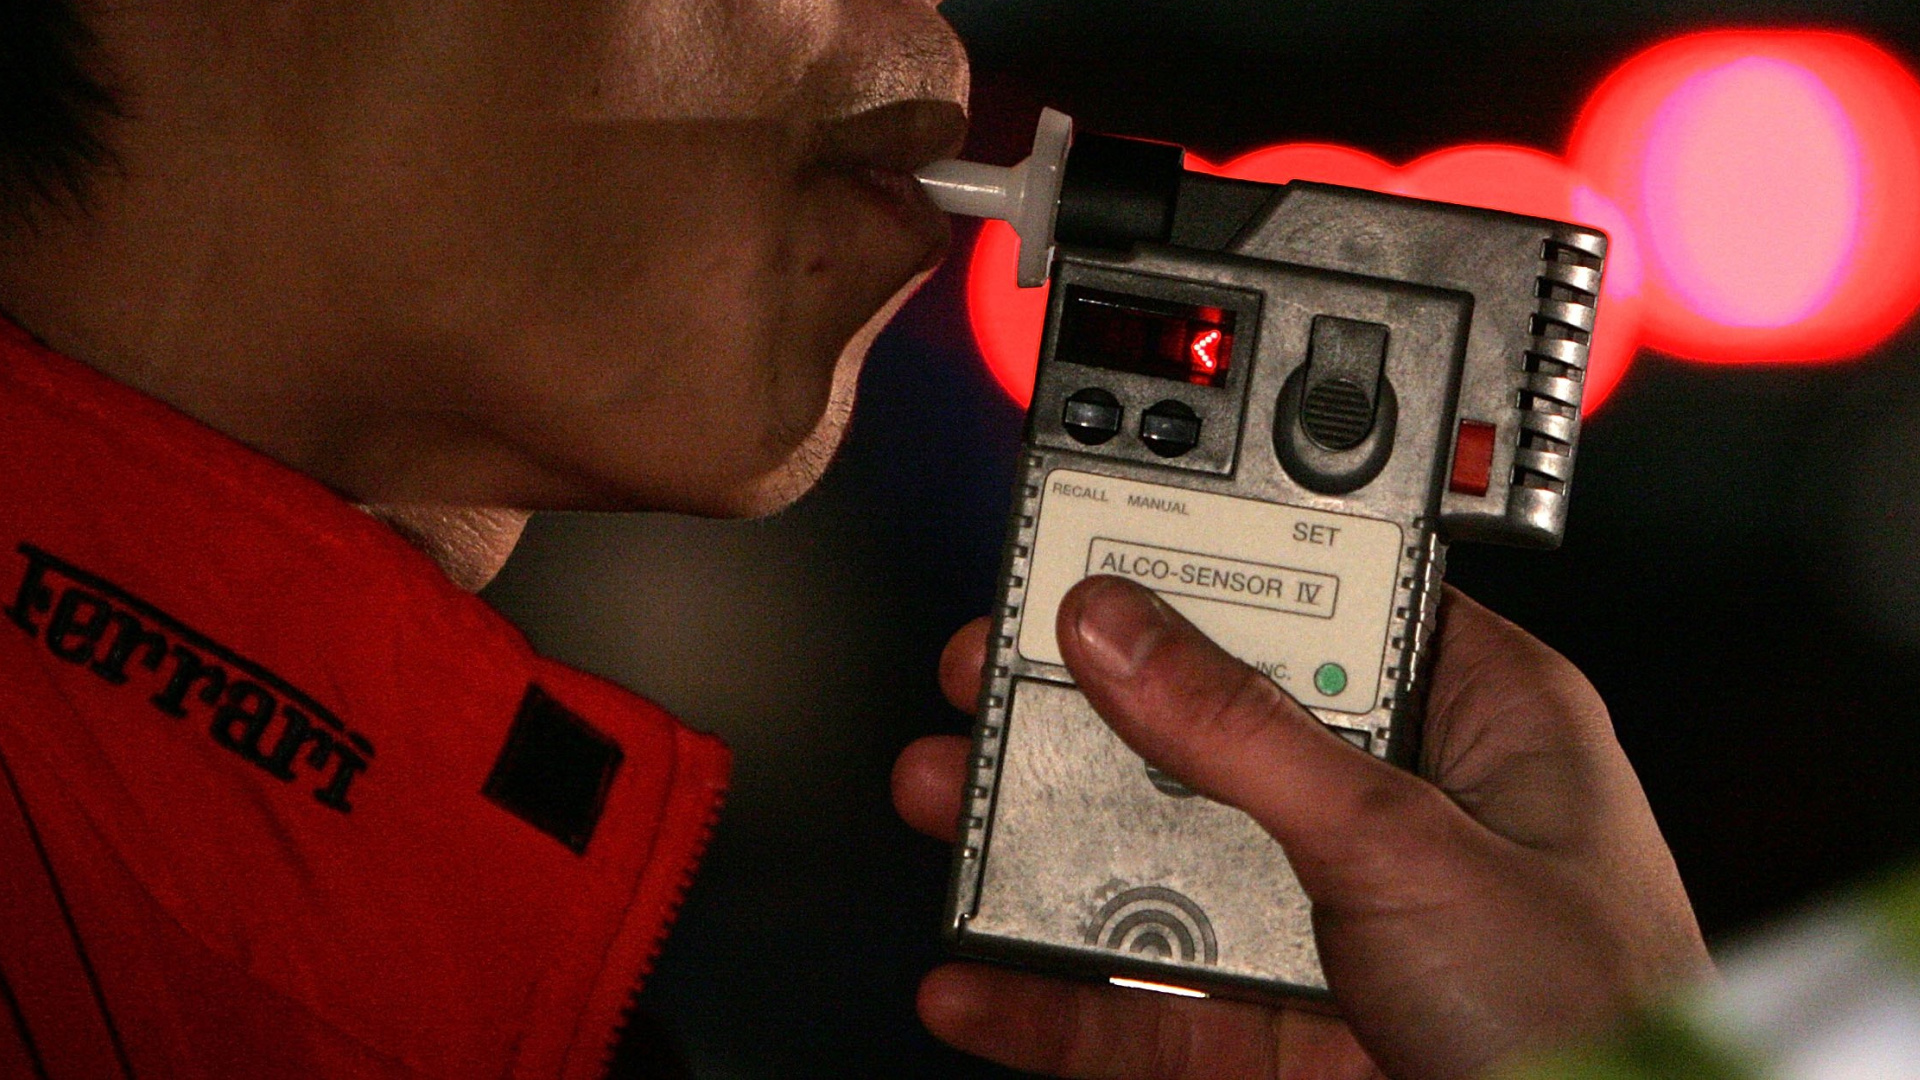 A man blows into a breathalizer during a field sobriety test after he was stopped by San Bruno Police officers at a DUI checkpoint Nov. 27, 2006 in San Bruno. (Justin Sullivan/Getty Images)